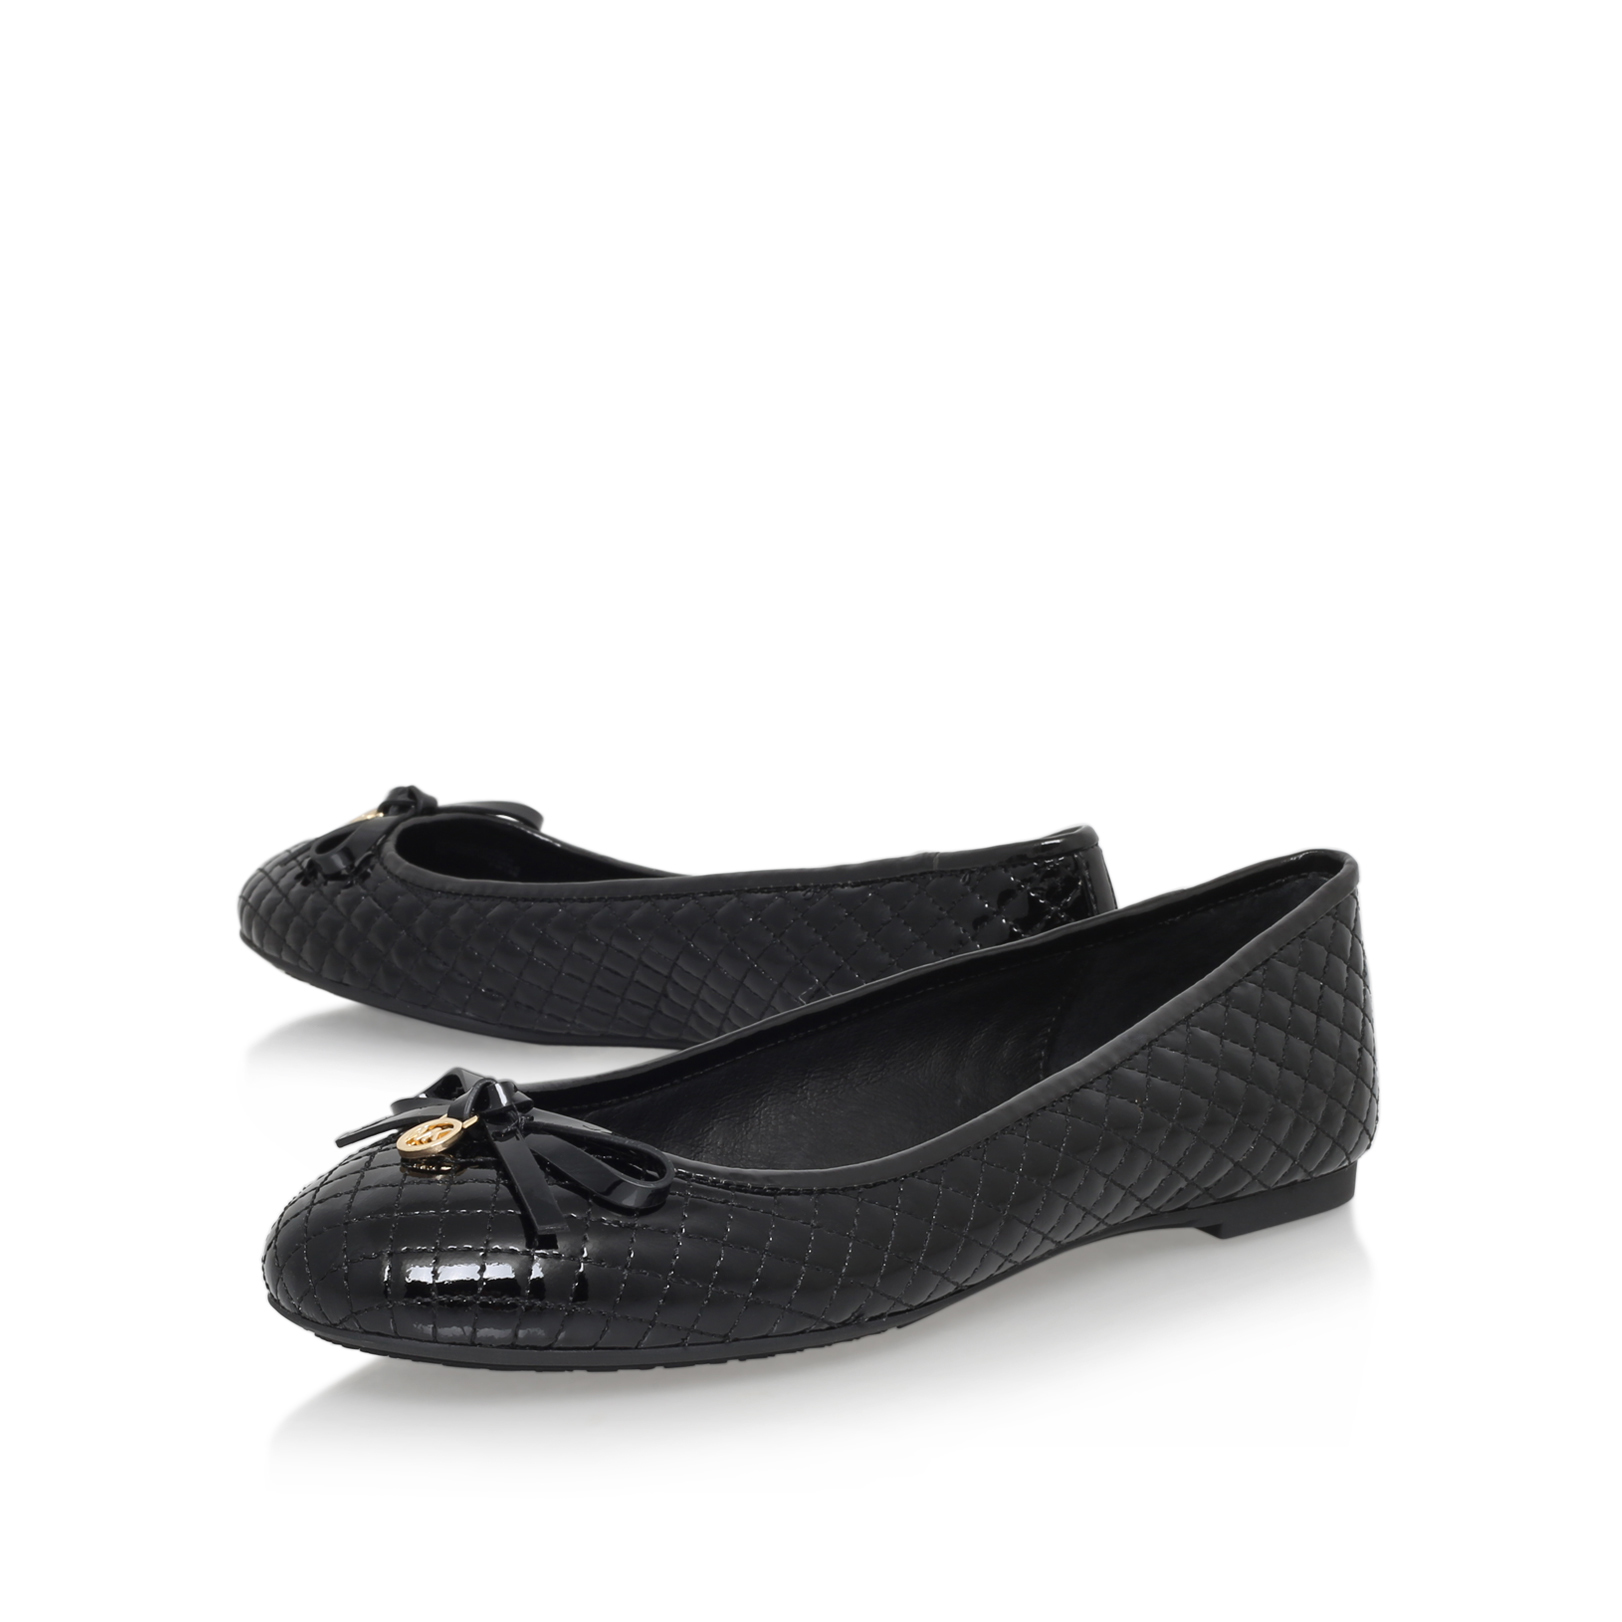 melody quilted ballet michael michael kors melody quilted ballet black patent flats by michael. Black Bedroom Furniture Sets. Home Design Ideas